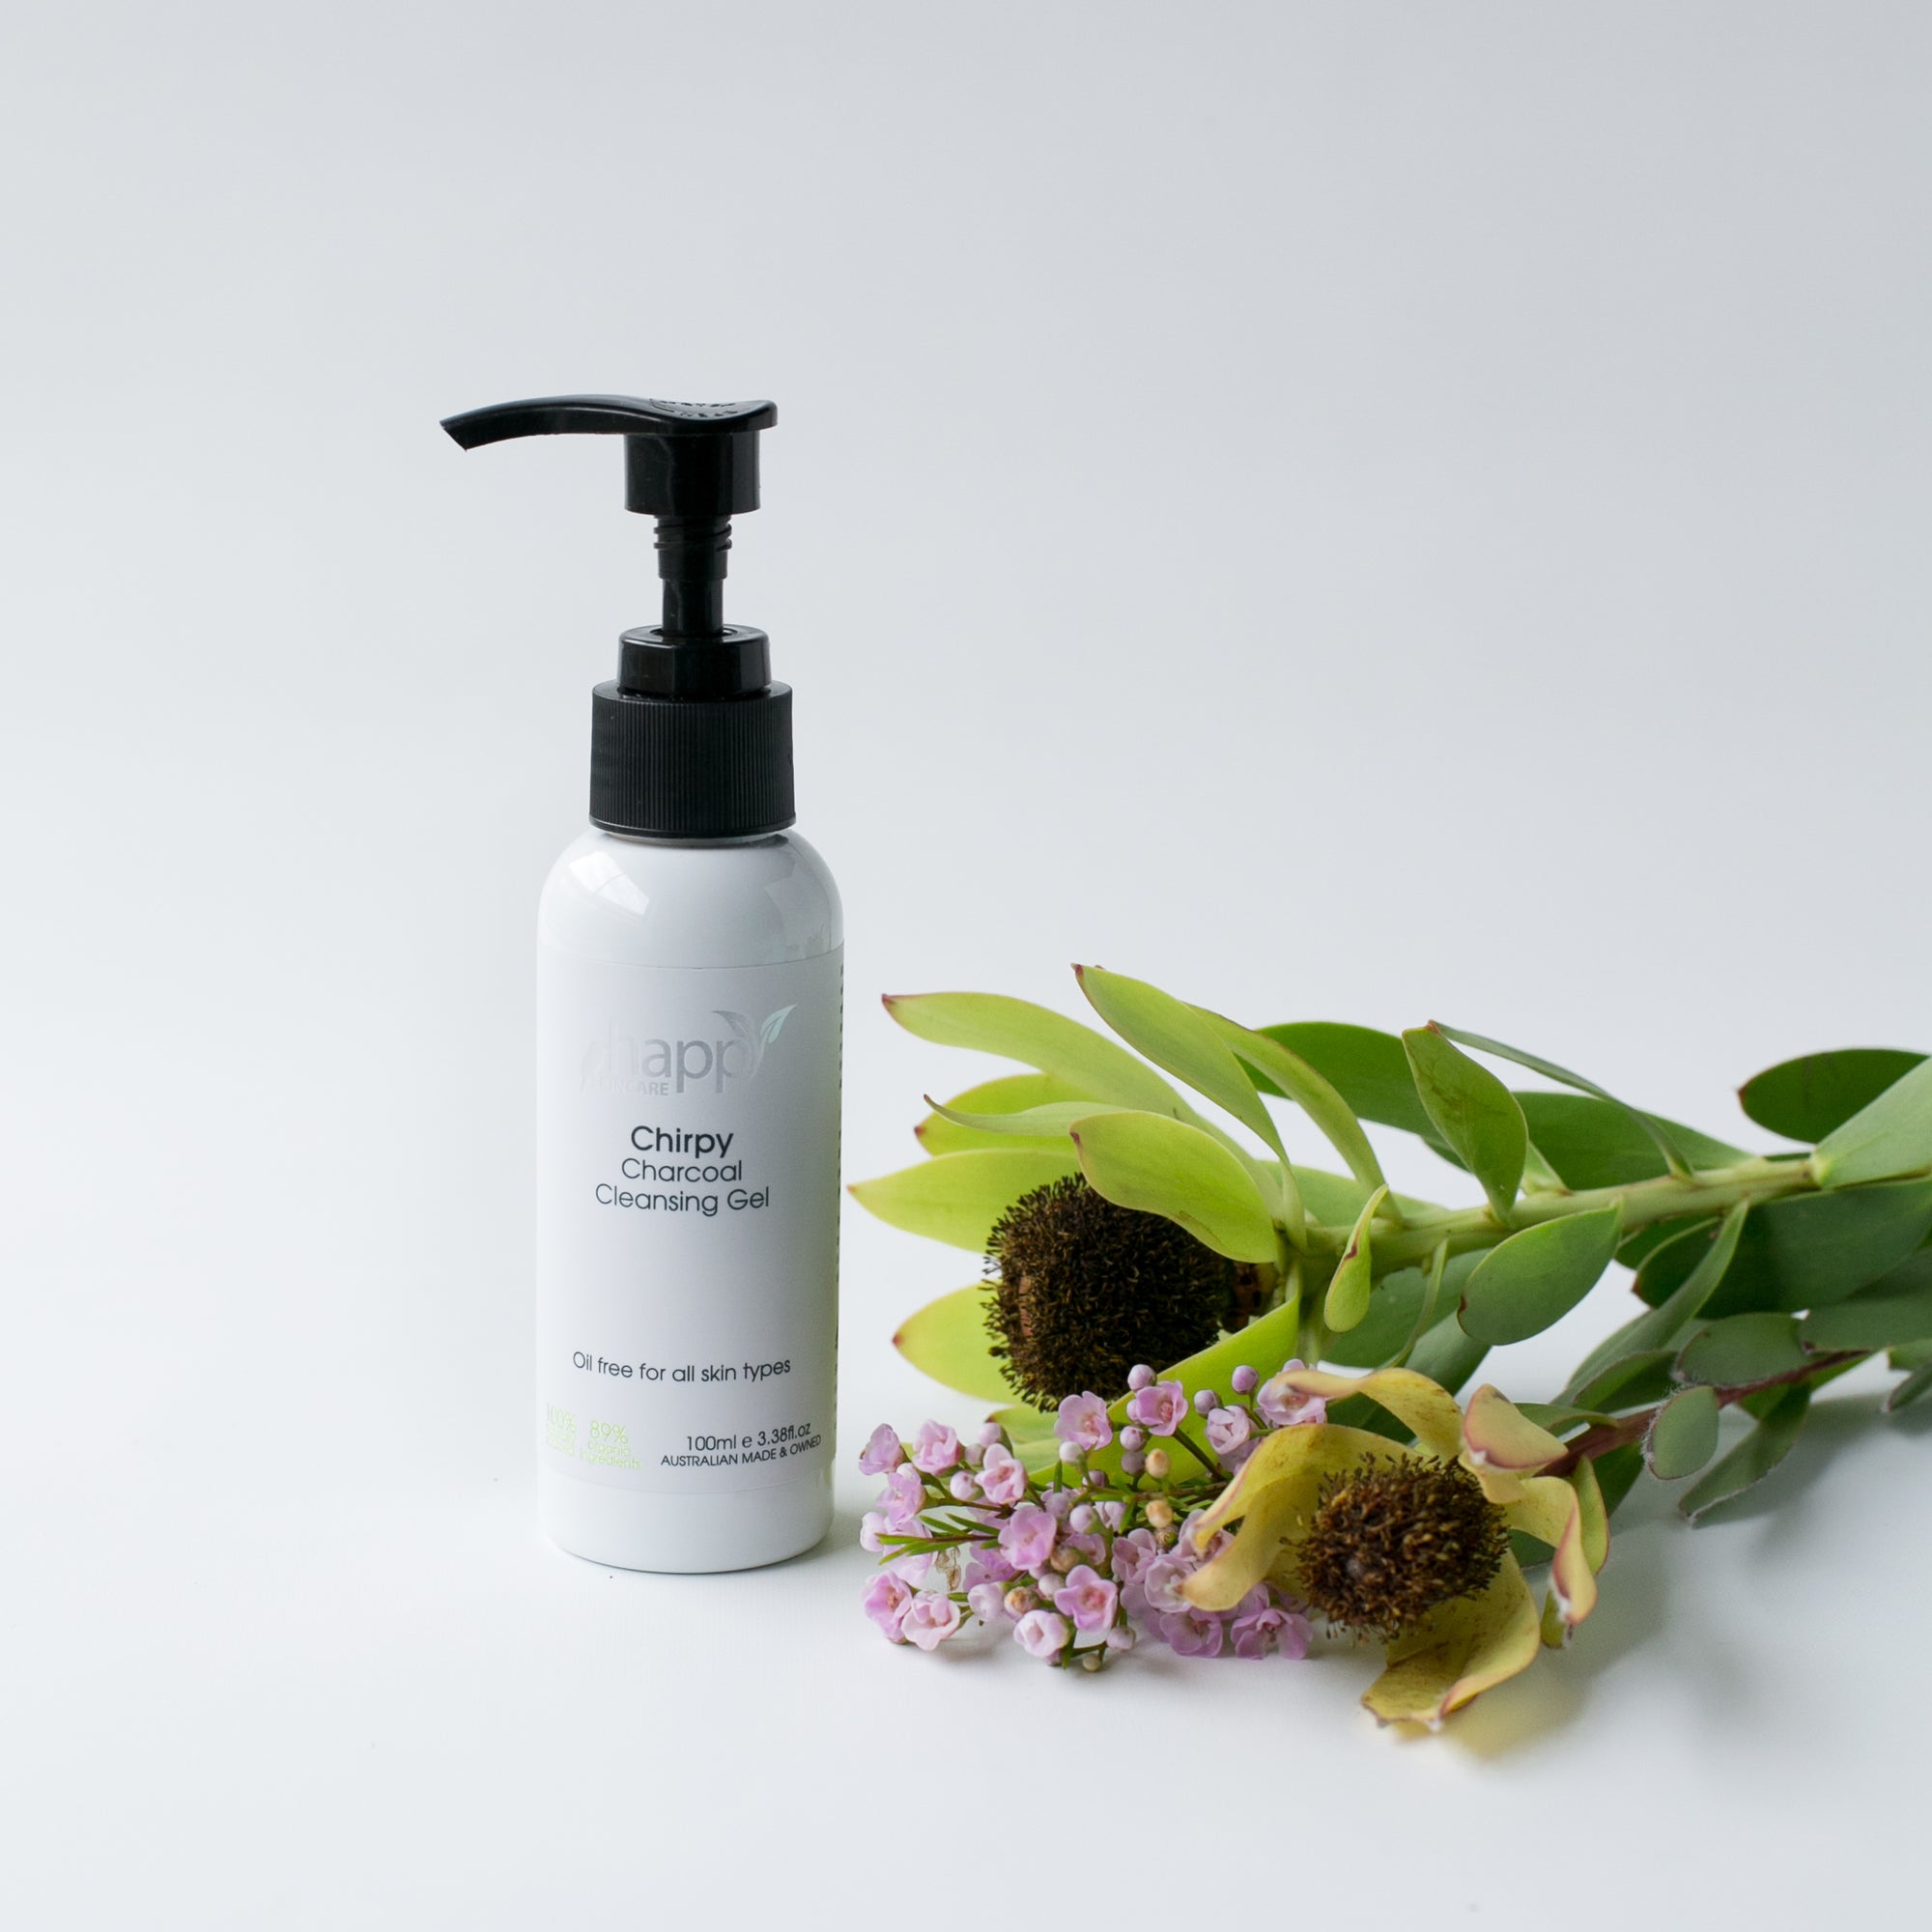 'Chirpy' Charcoal Cleansing Gel